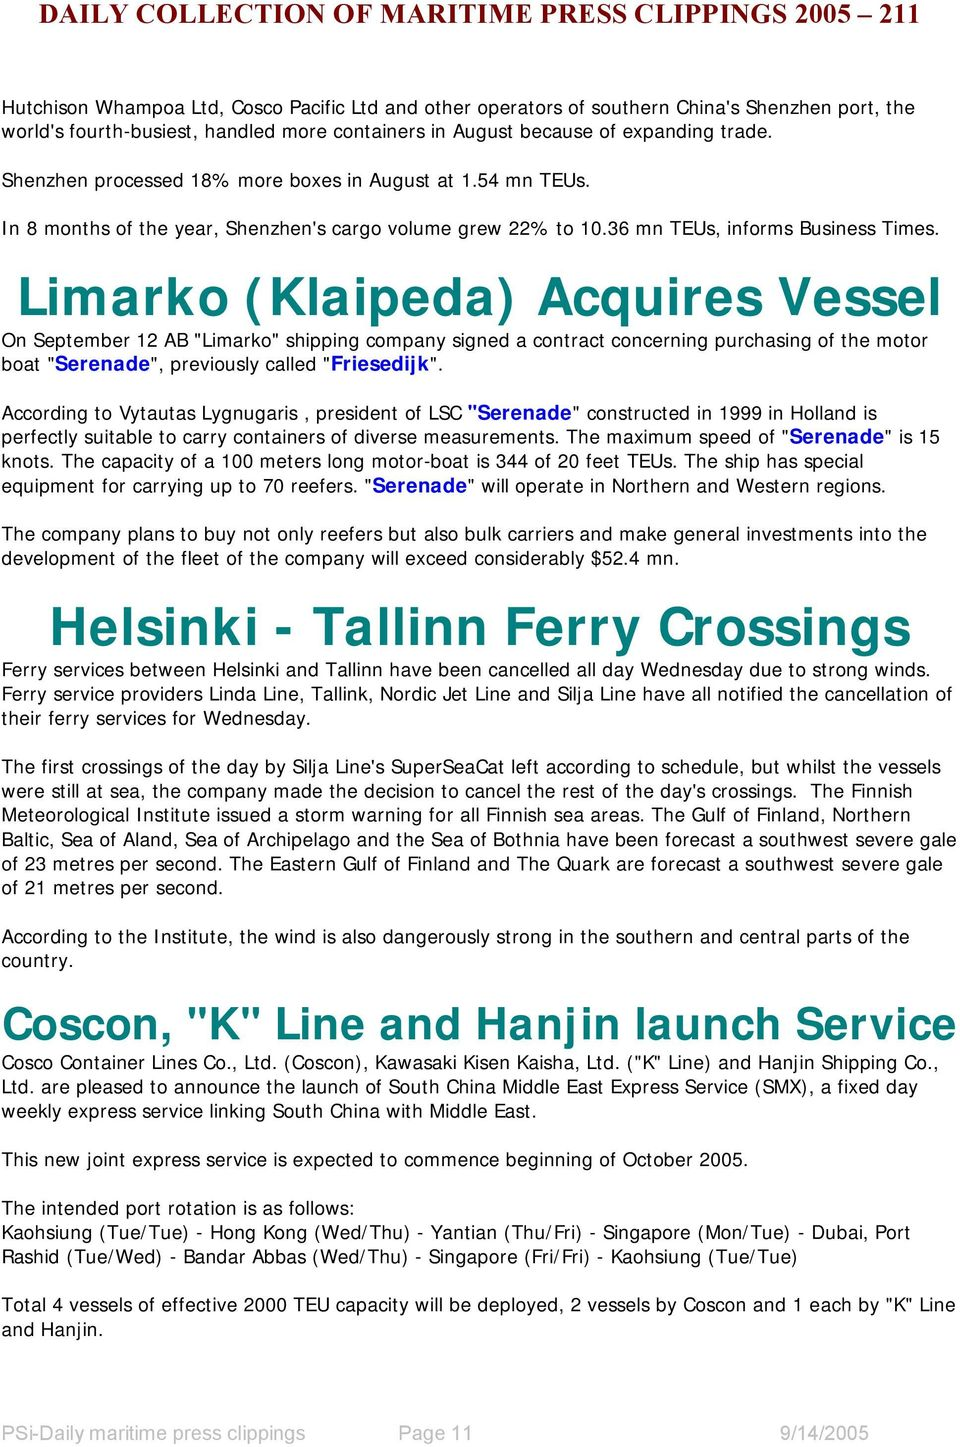 "Limarko (Klaipeda) Acquires Vessel On September 12 AB ""Limarko"" shipping company signed a contract concerning purchasing of the motor boat ""Serenade"", previously called ""Friesedijk""."